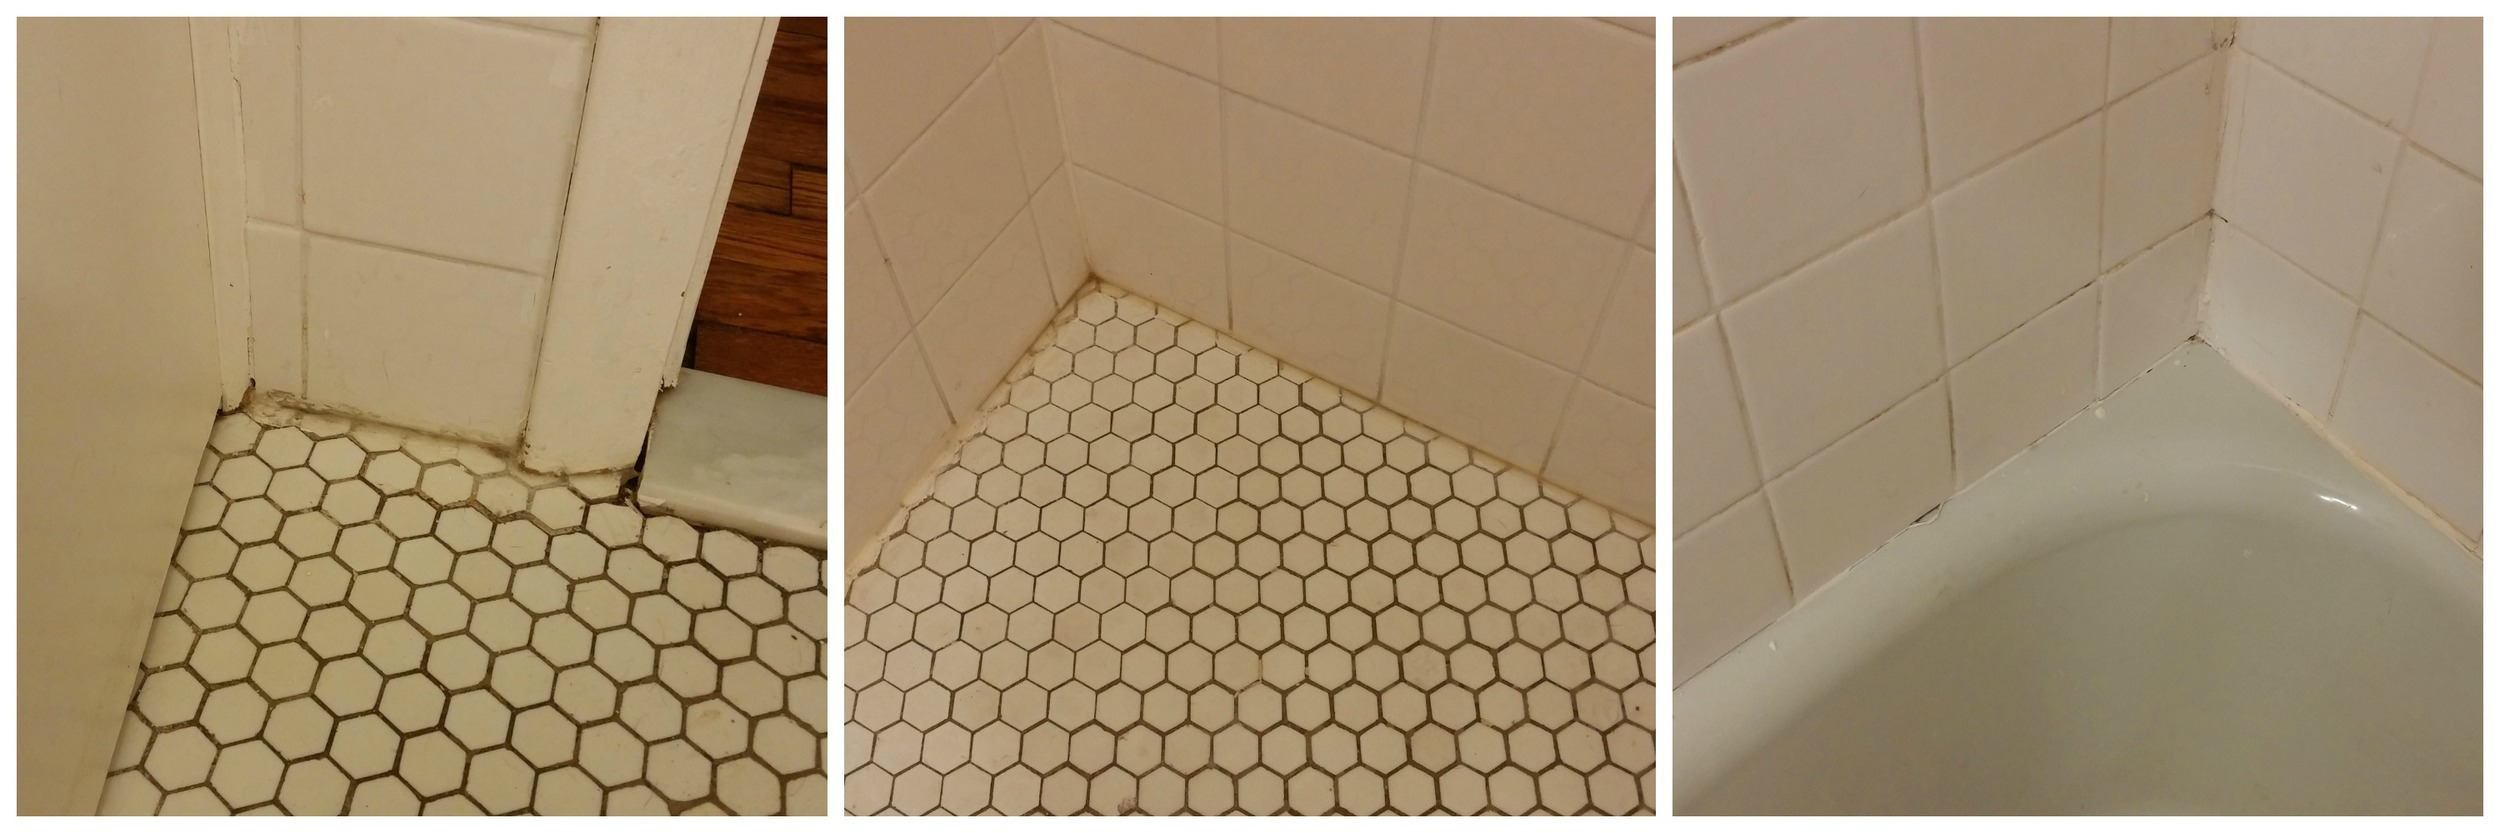 Ugly floor caulk (and a grout issue), and the caulk in the tub that needs to be replaced (and more grout issues)